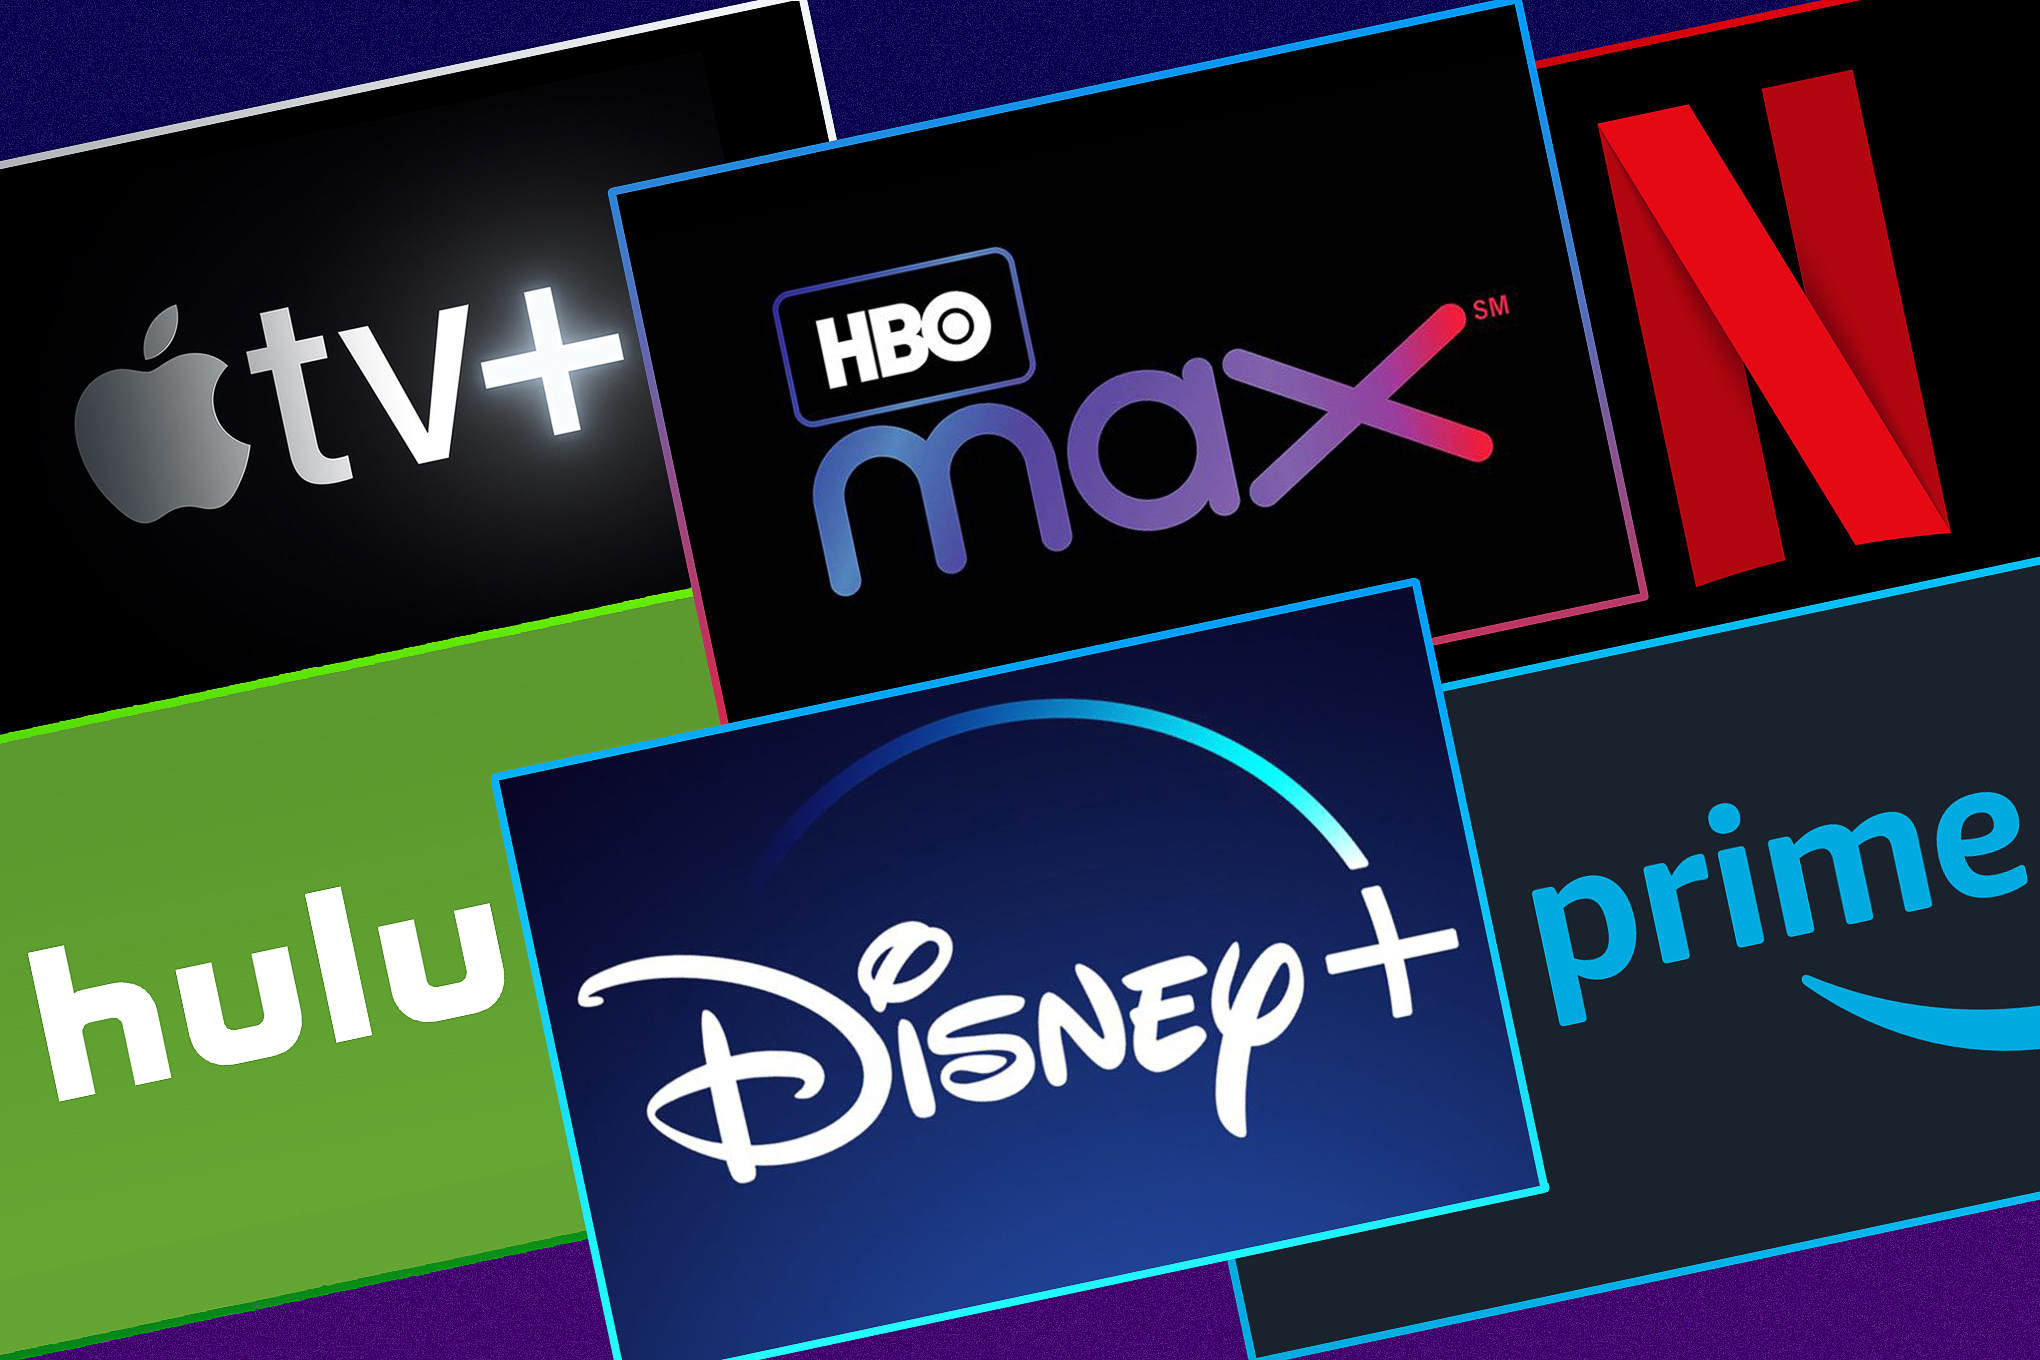 The logos of six streaming services: Apple TV Plus, HBO Max, Netflix, Hulu, Disney Plus and Amazon Prime Video,